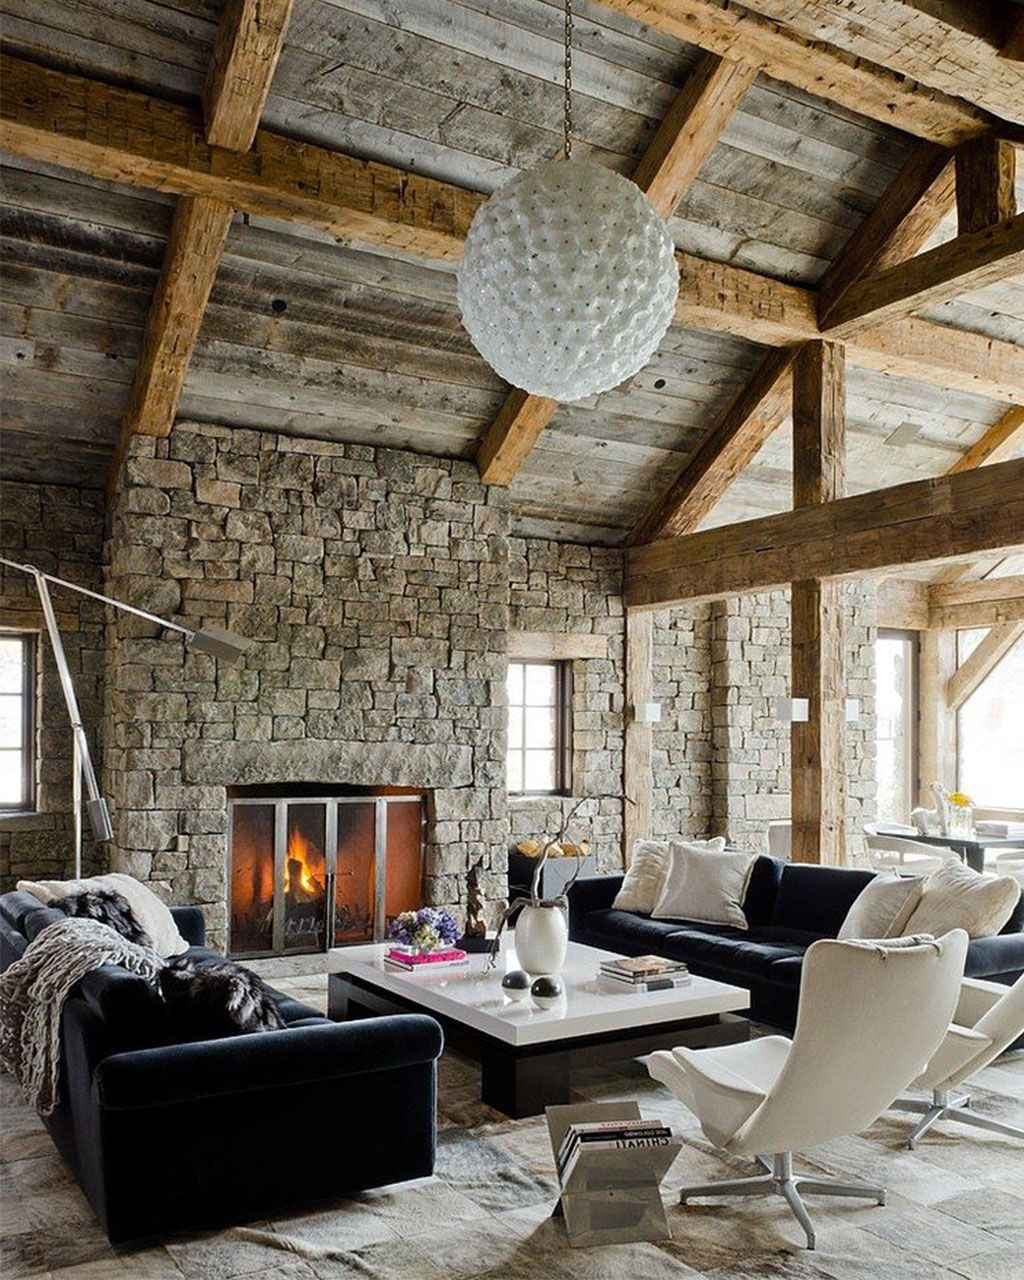 20 Rustic Interior Wall Design Ideas Home Design Interior